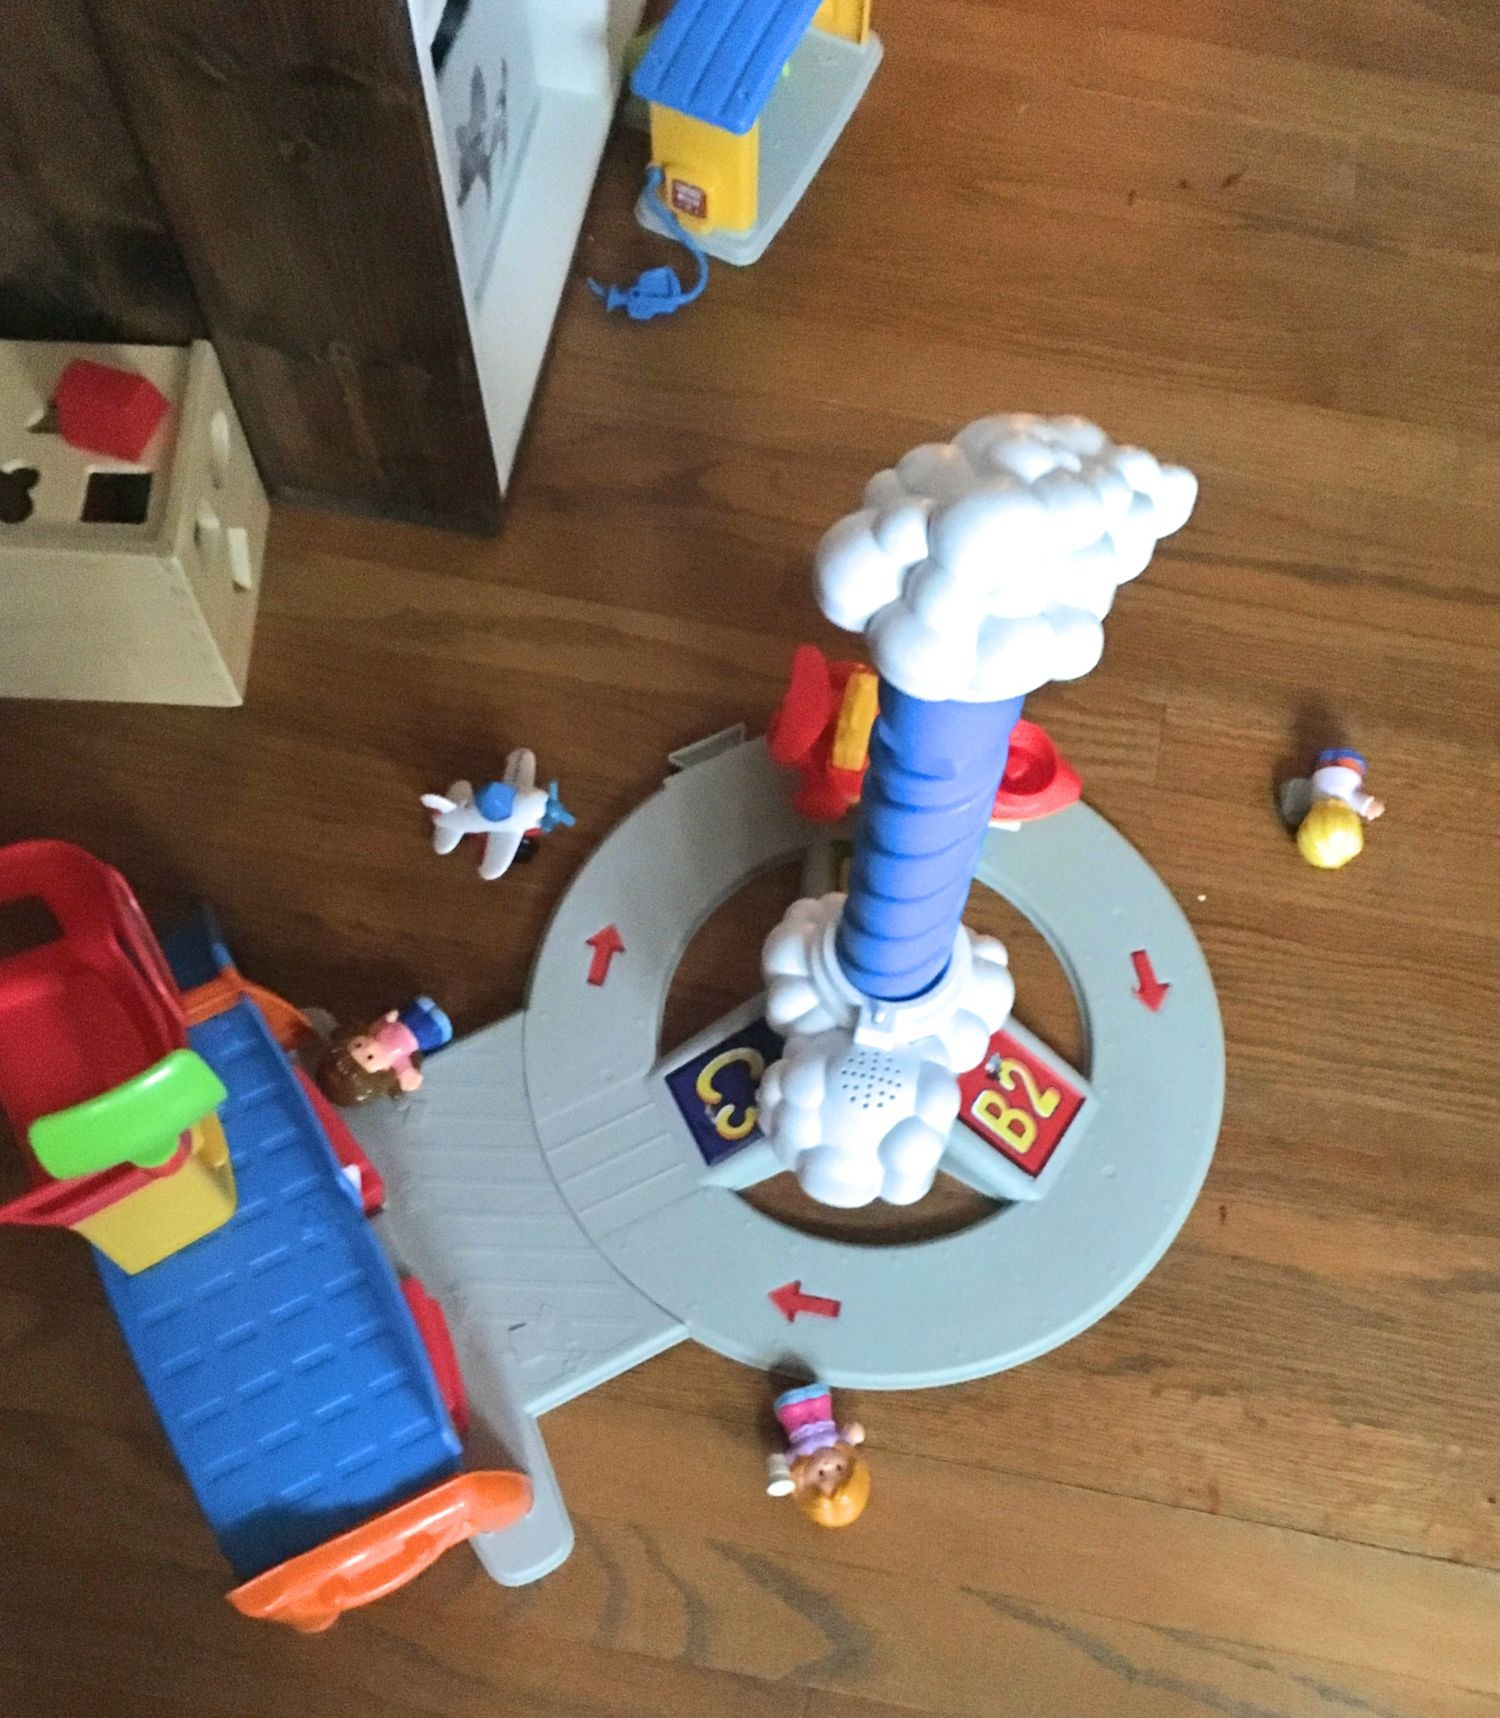 Pretend play to prepare young children for the airport #doseofplay #travelingwithkids #travelingalonewithkids #howtotravelalonewithkids #tipstopreparekidsforairtravel #flyingwithtoddlers #preparation #pretendplay #childlife #parenthood